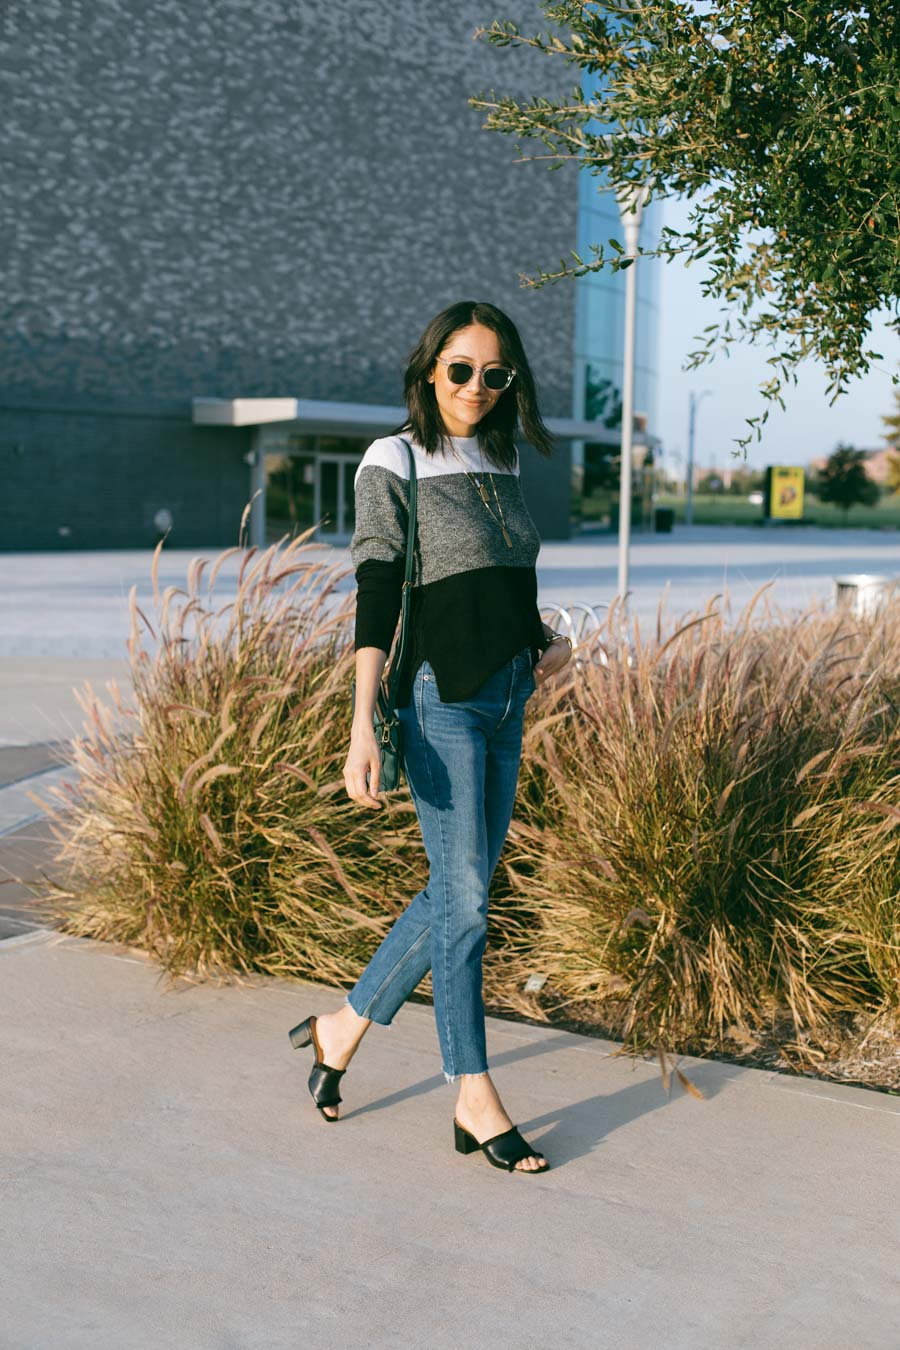 Lilly Beltran wearing Old Navy jeans and sweater for an affordable fall look.